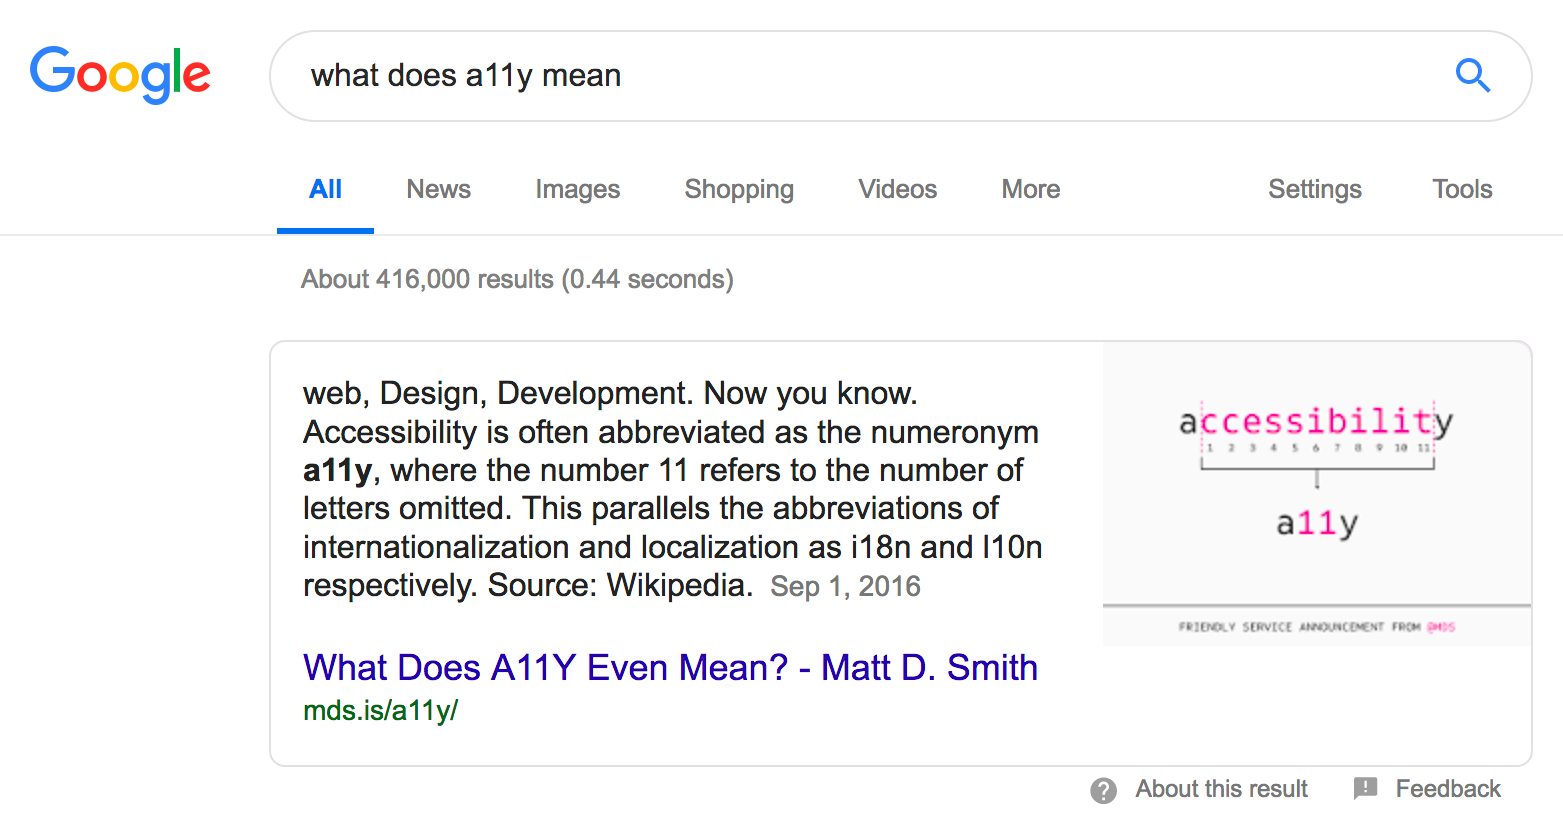 "Google search results for, ""what does a11y mean"". The first result a structured data reply, taken from Wikipedia and the article, ""What Does A11Y Even Mean?"" by Matt D. Smith. It's description reads, ""Accessibility is often abbreviated as the numeronym a11y, where the number 11 refers to the number of letters omitted. This parallels the abbreviations of internationalization and localization as i18n and l10n respectively."" The image comes from Matt D. Smith's article and shows how the term ""a11y"" is formed from the word ""accessibility.""."